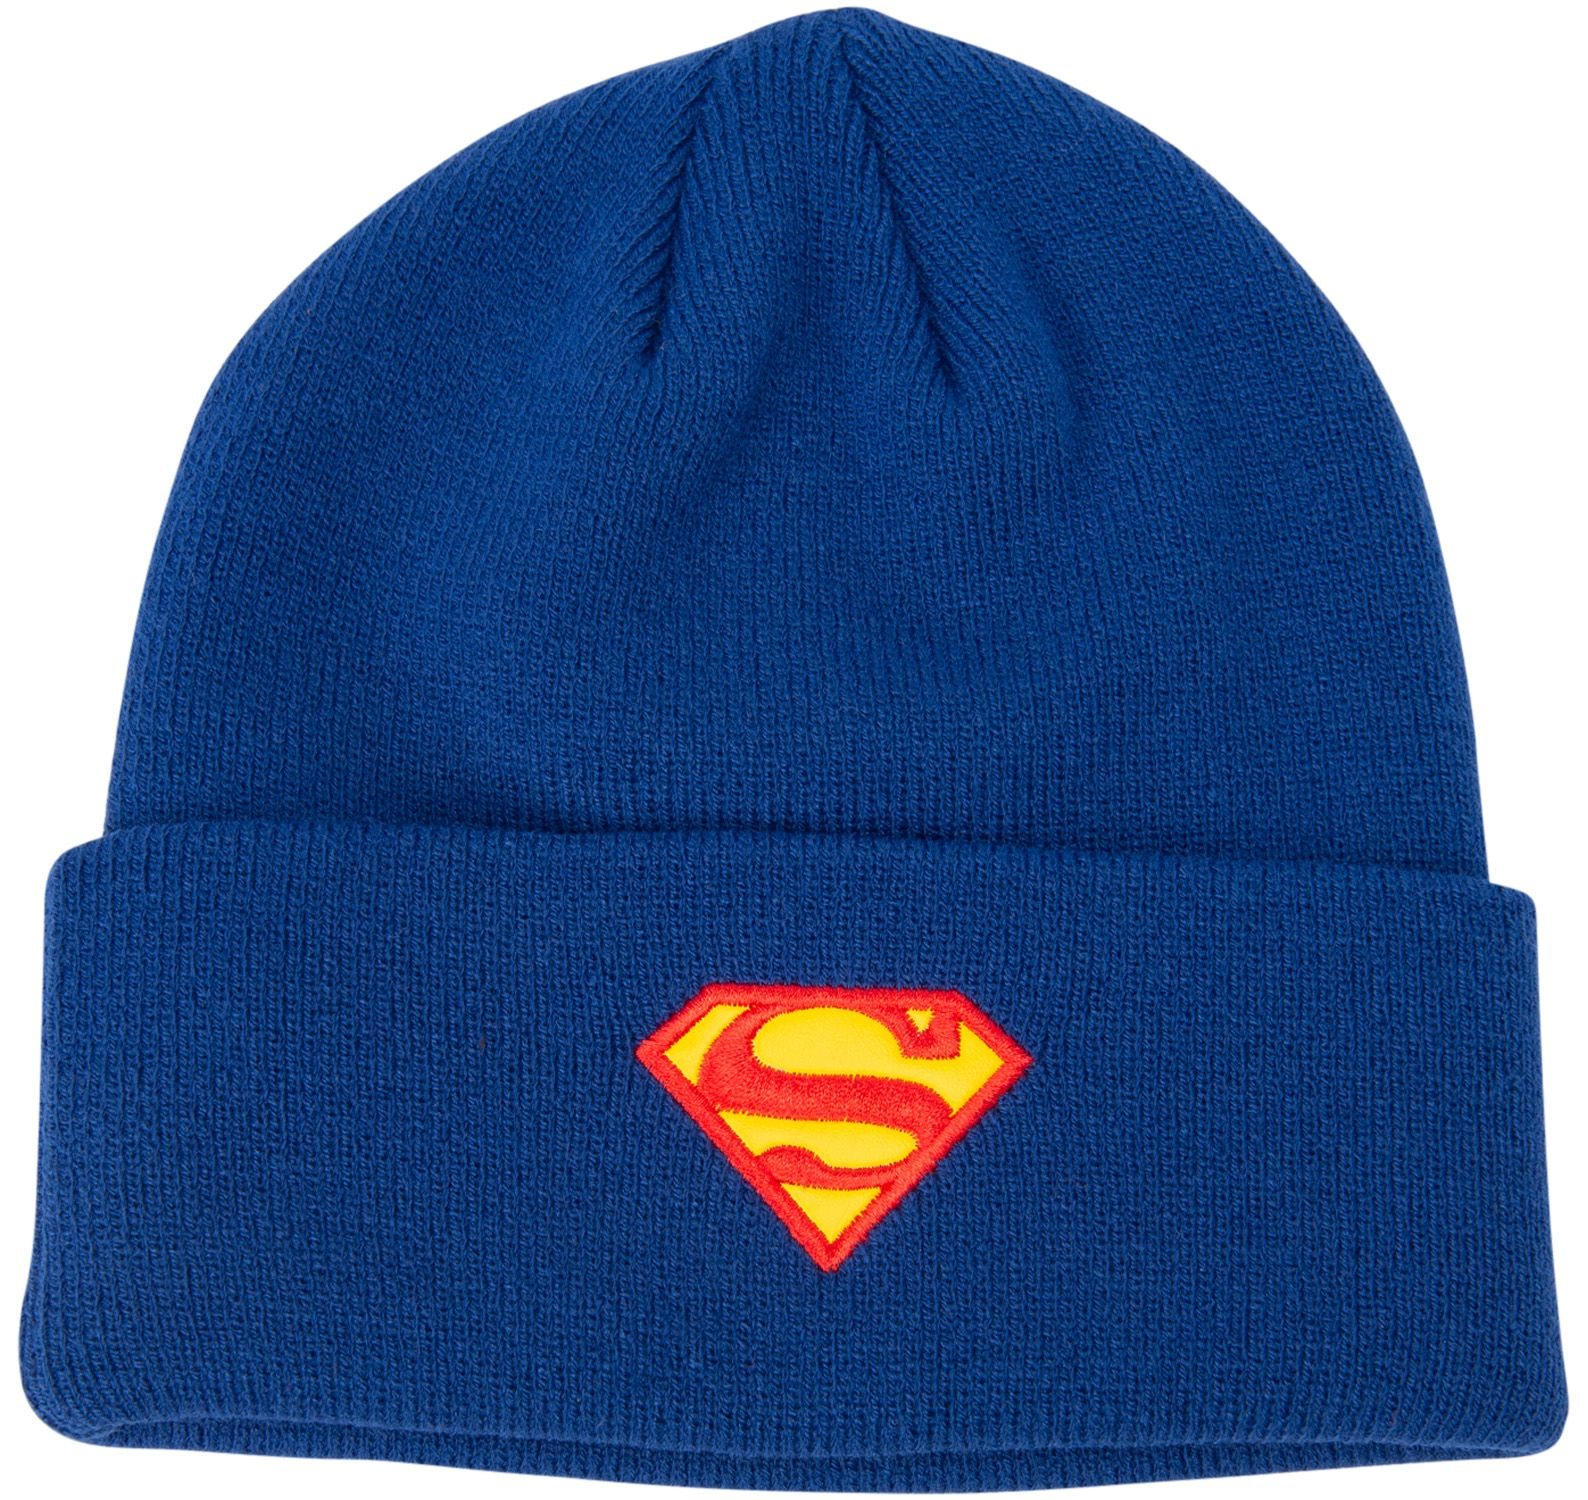 Justice league beanie, LIMOGES-SUPERMAN, ONESIZE YOUTH